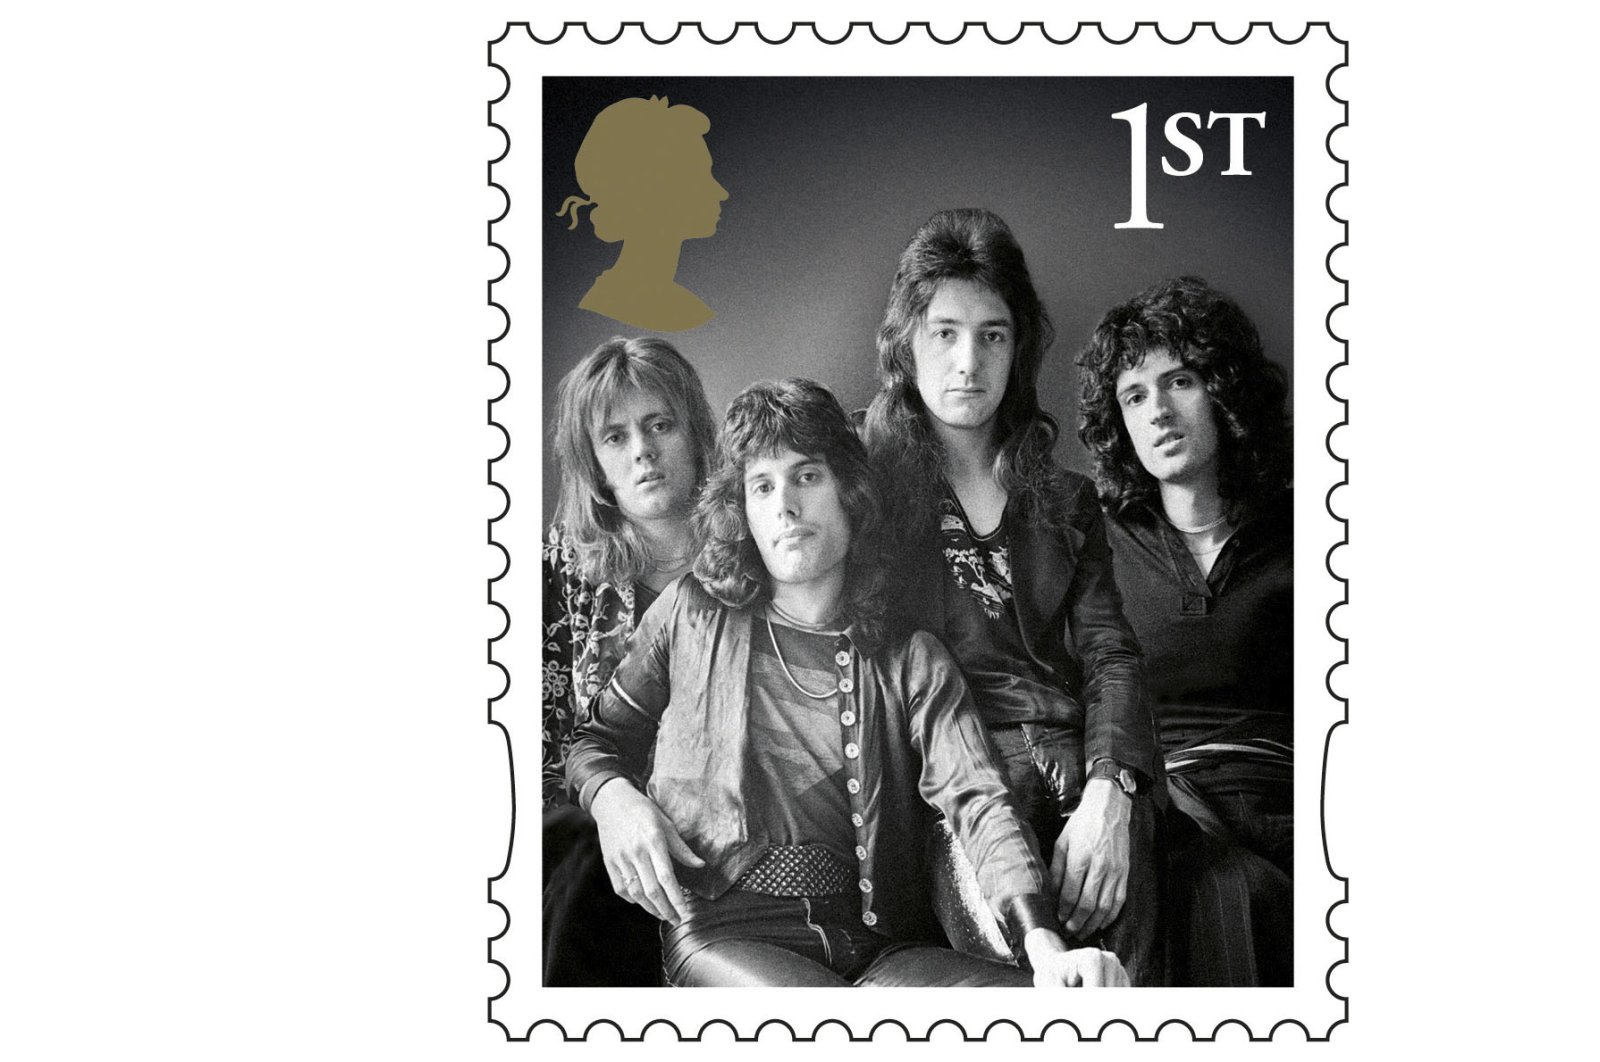 A design for one of a series of stamps issued by Royal Mail as a tribute to the band Queen. (Reuters Photo)